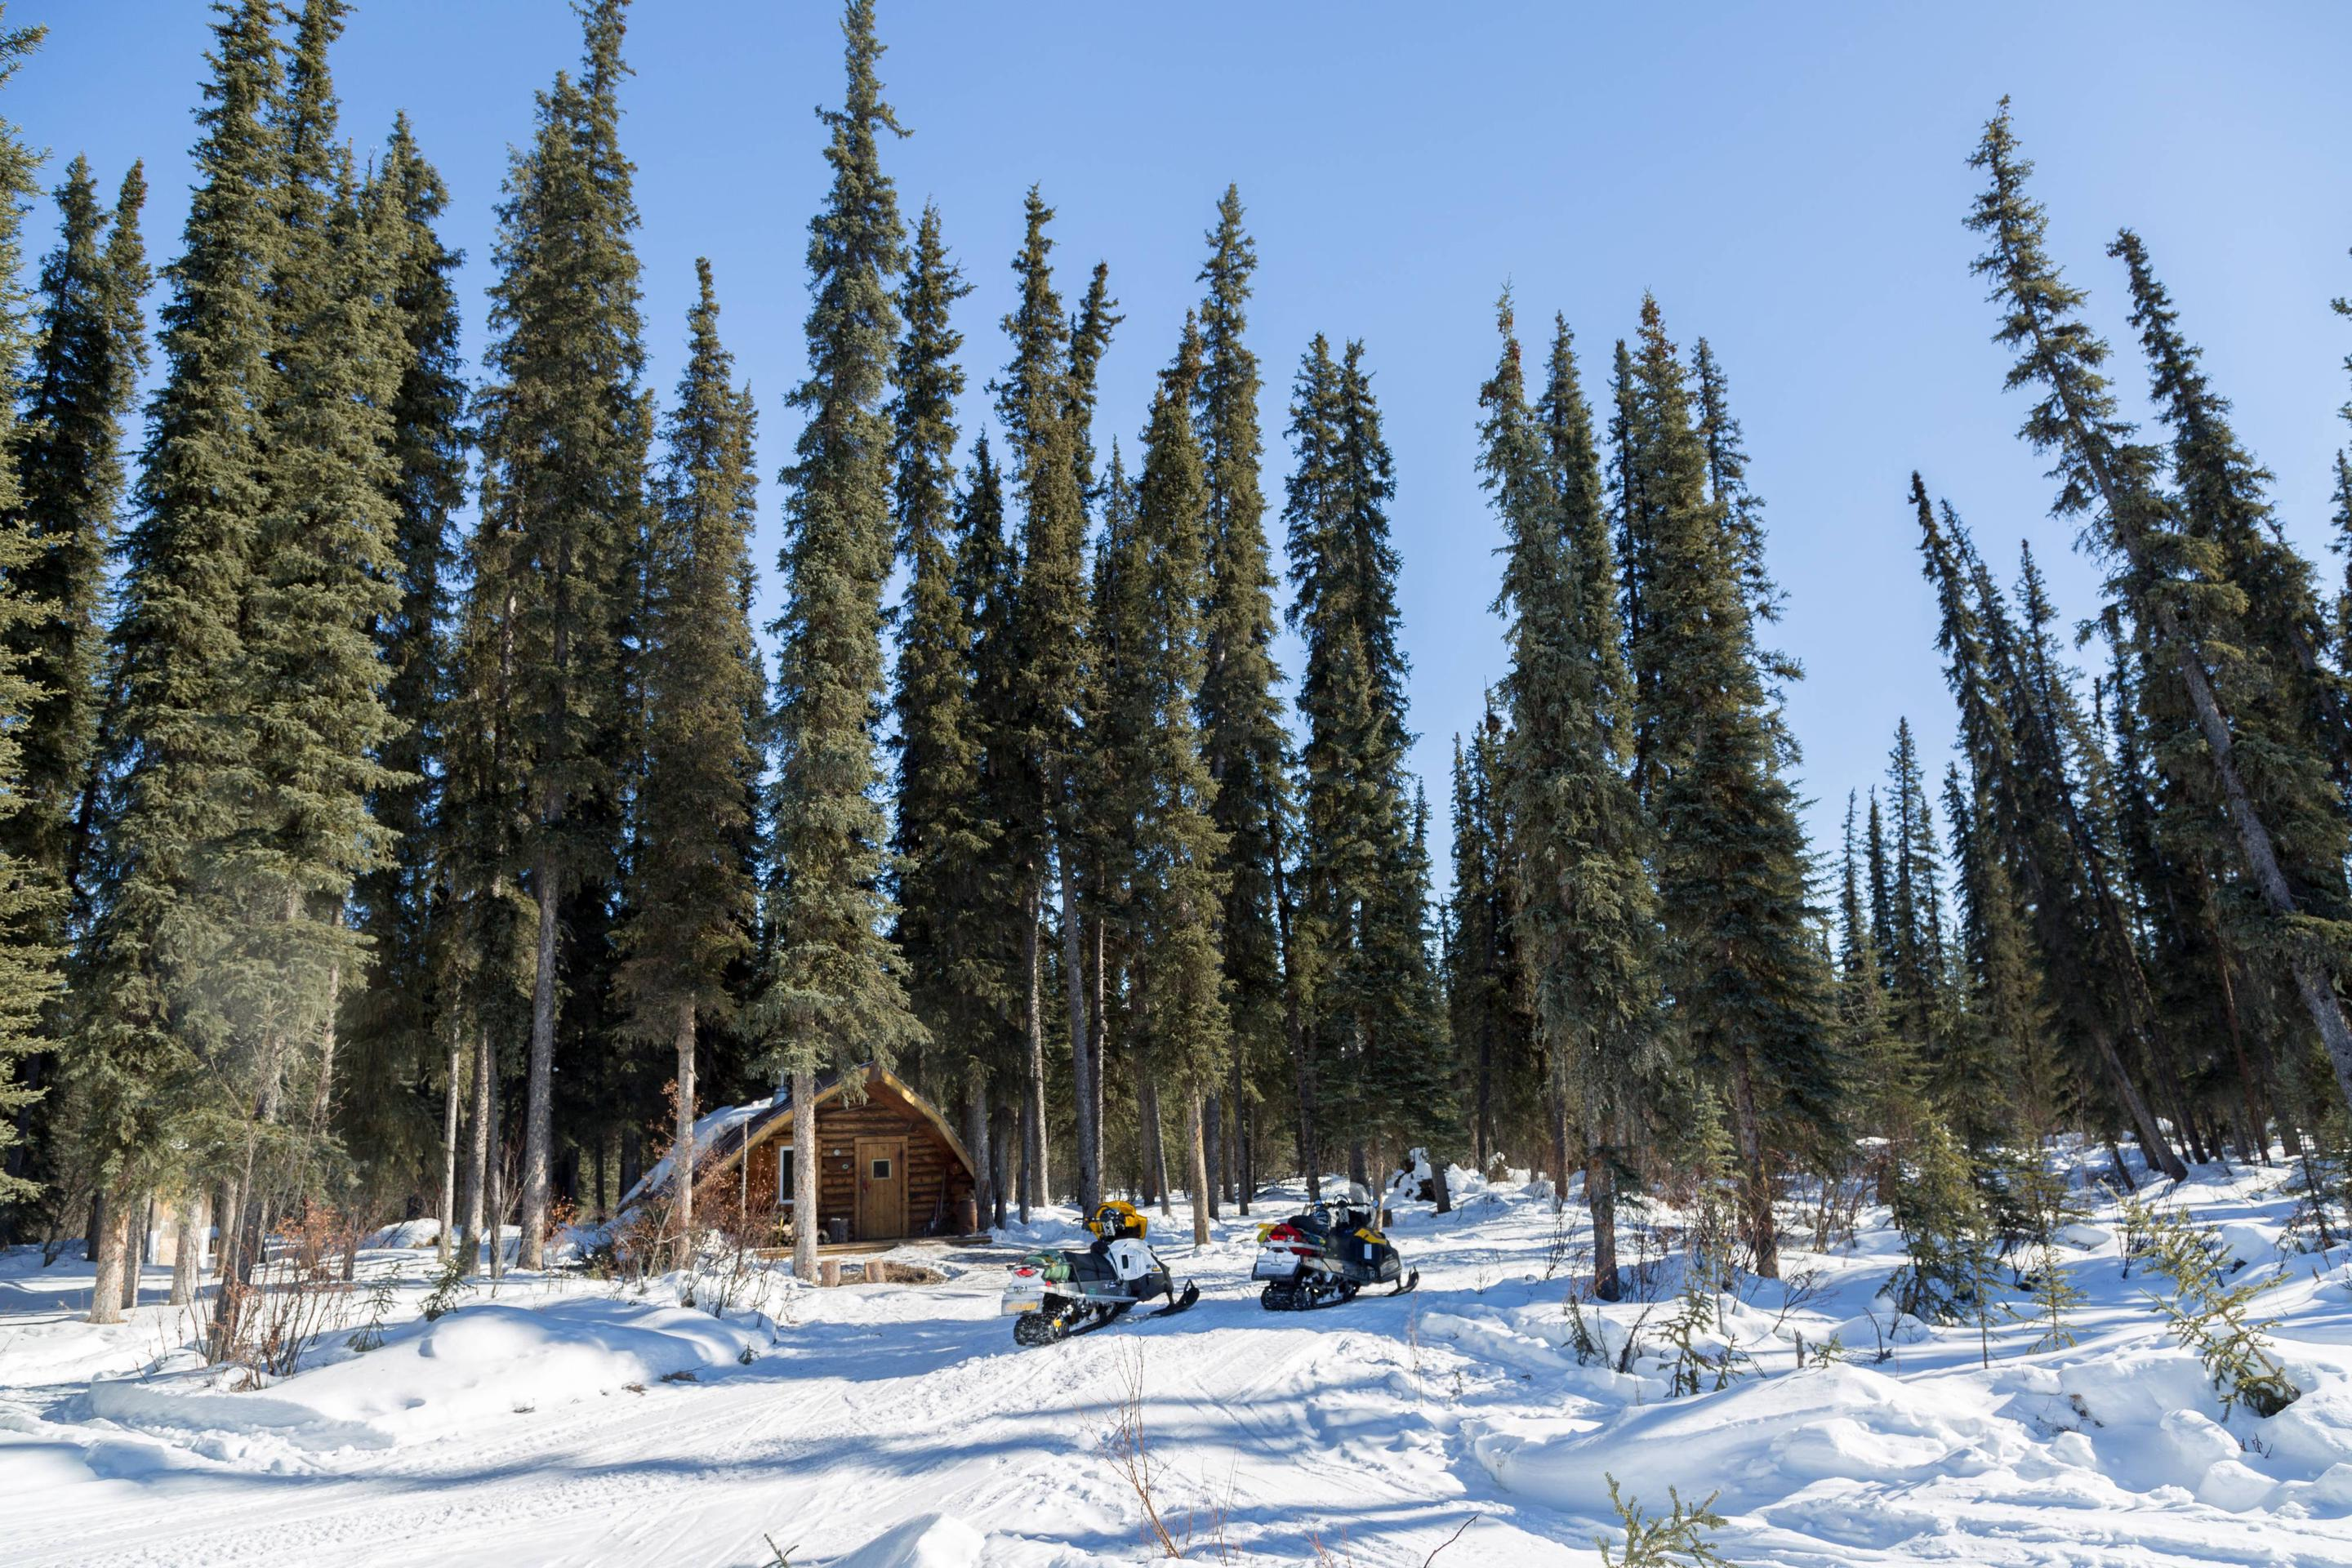 Winter view of a log cabin surrounded by tall treesRichard's Cabin is located in a grove of tall spruce trees.